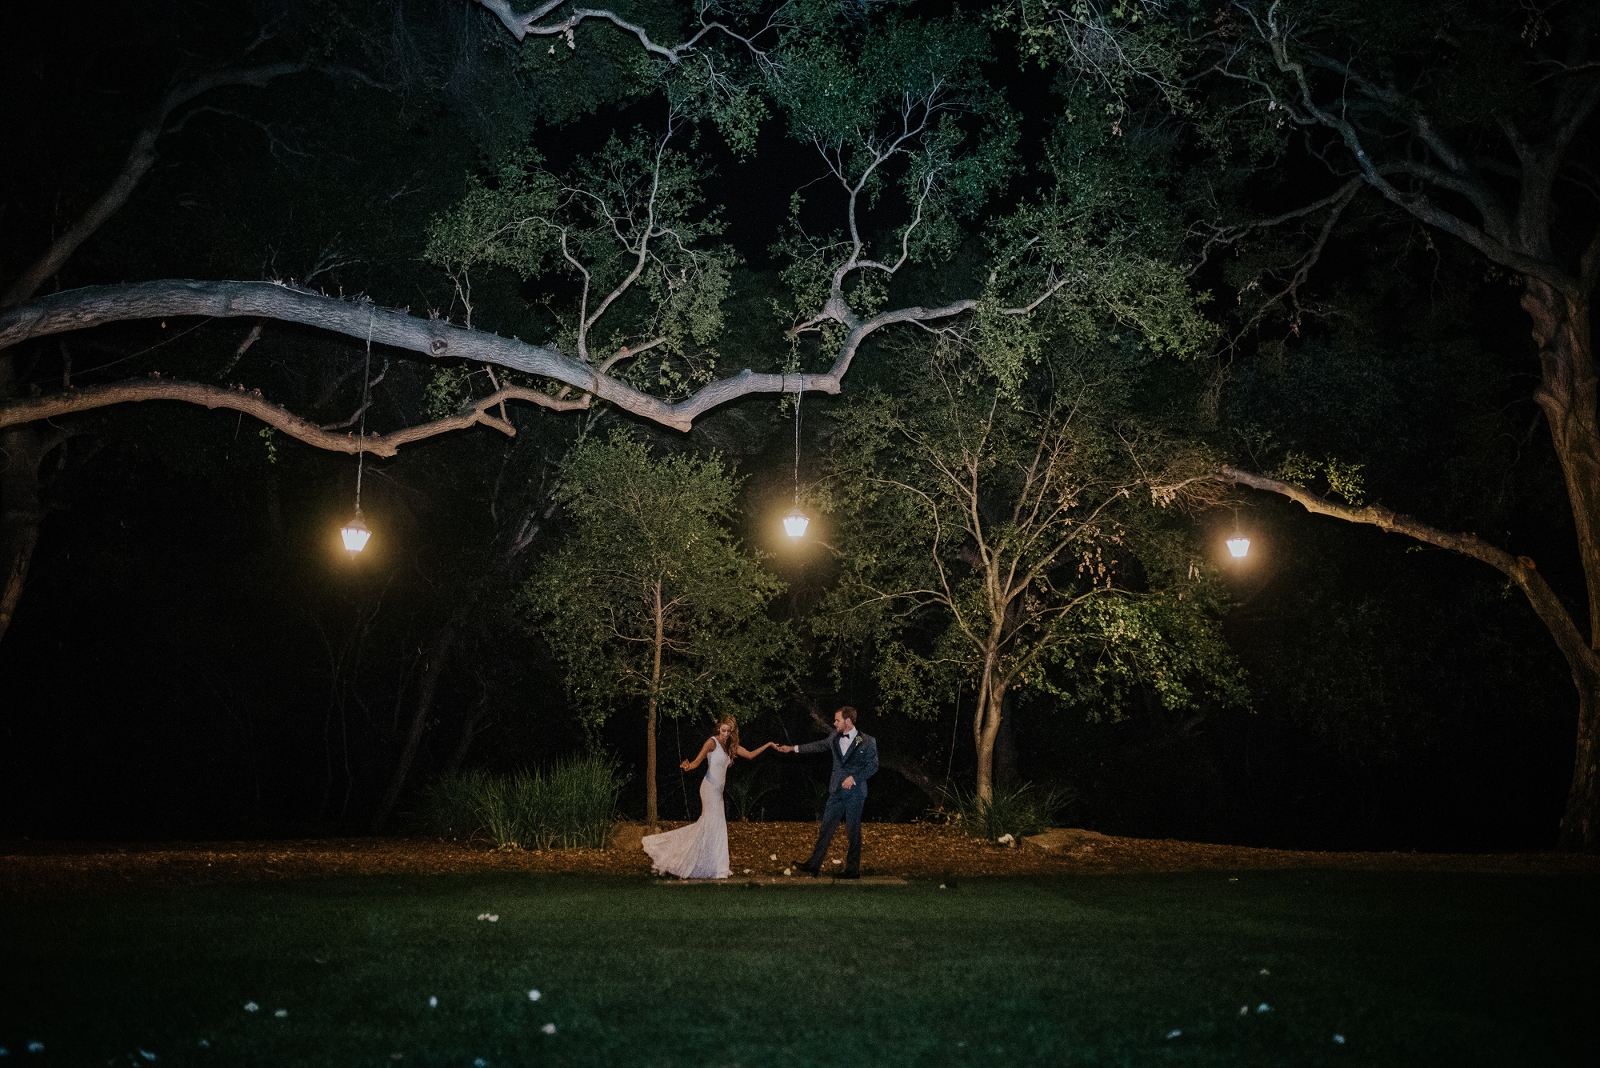 Bride and groom dancing in night shot bridal portrait at the Temecula creek inn wedding